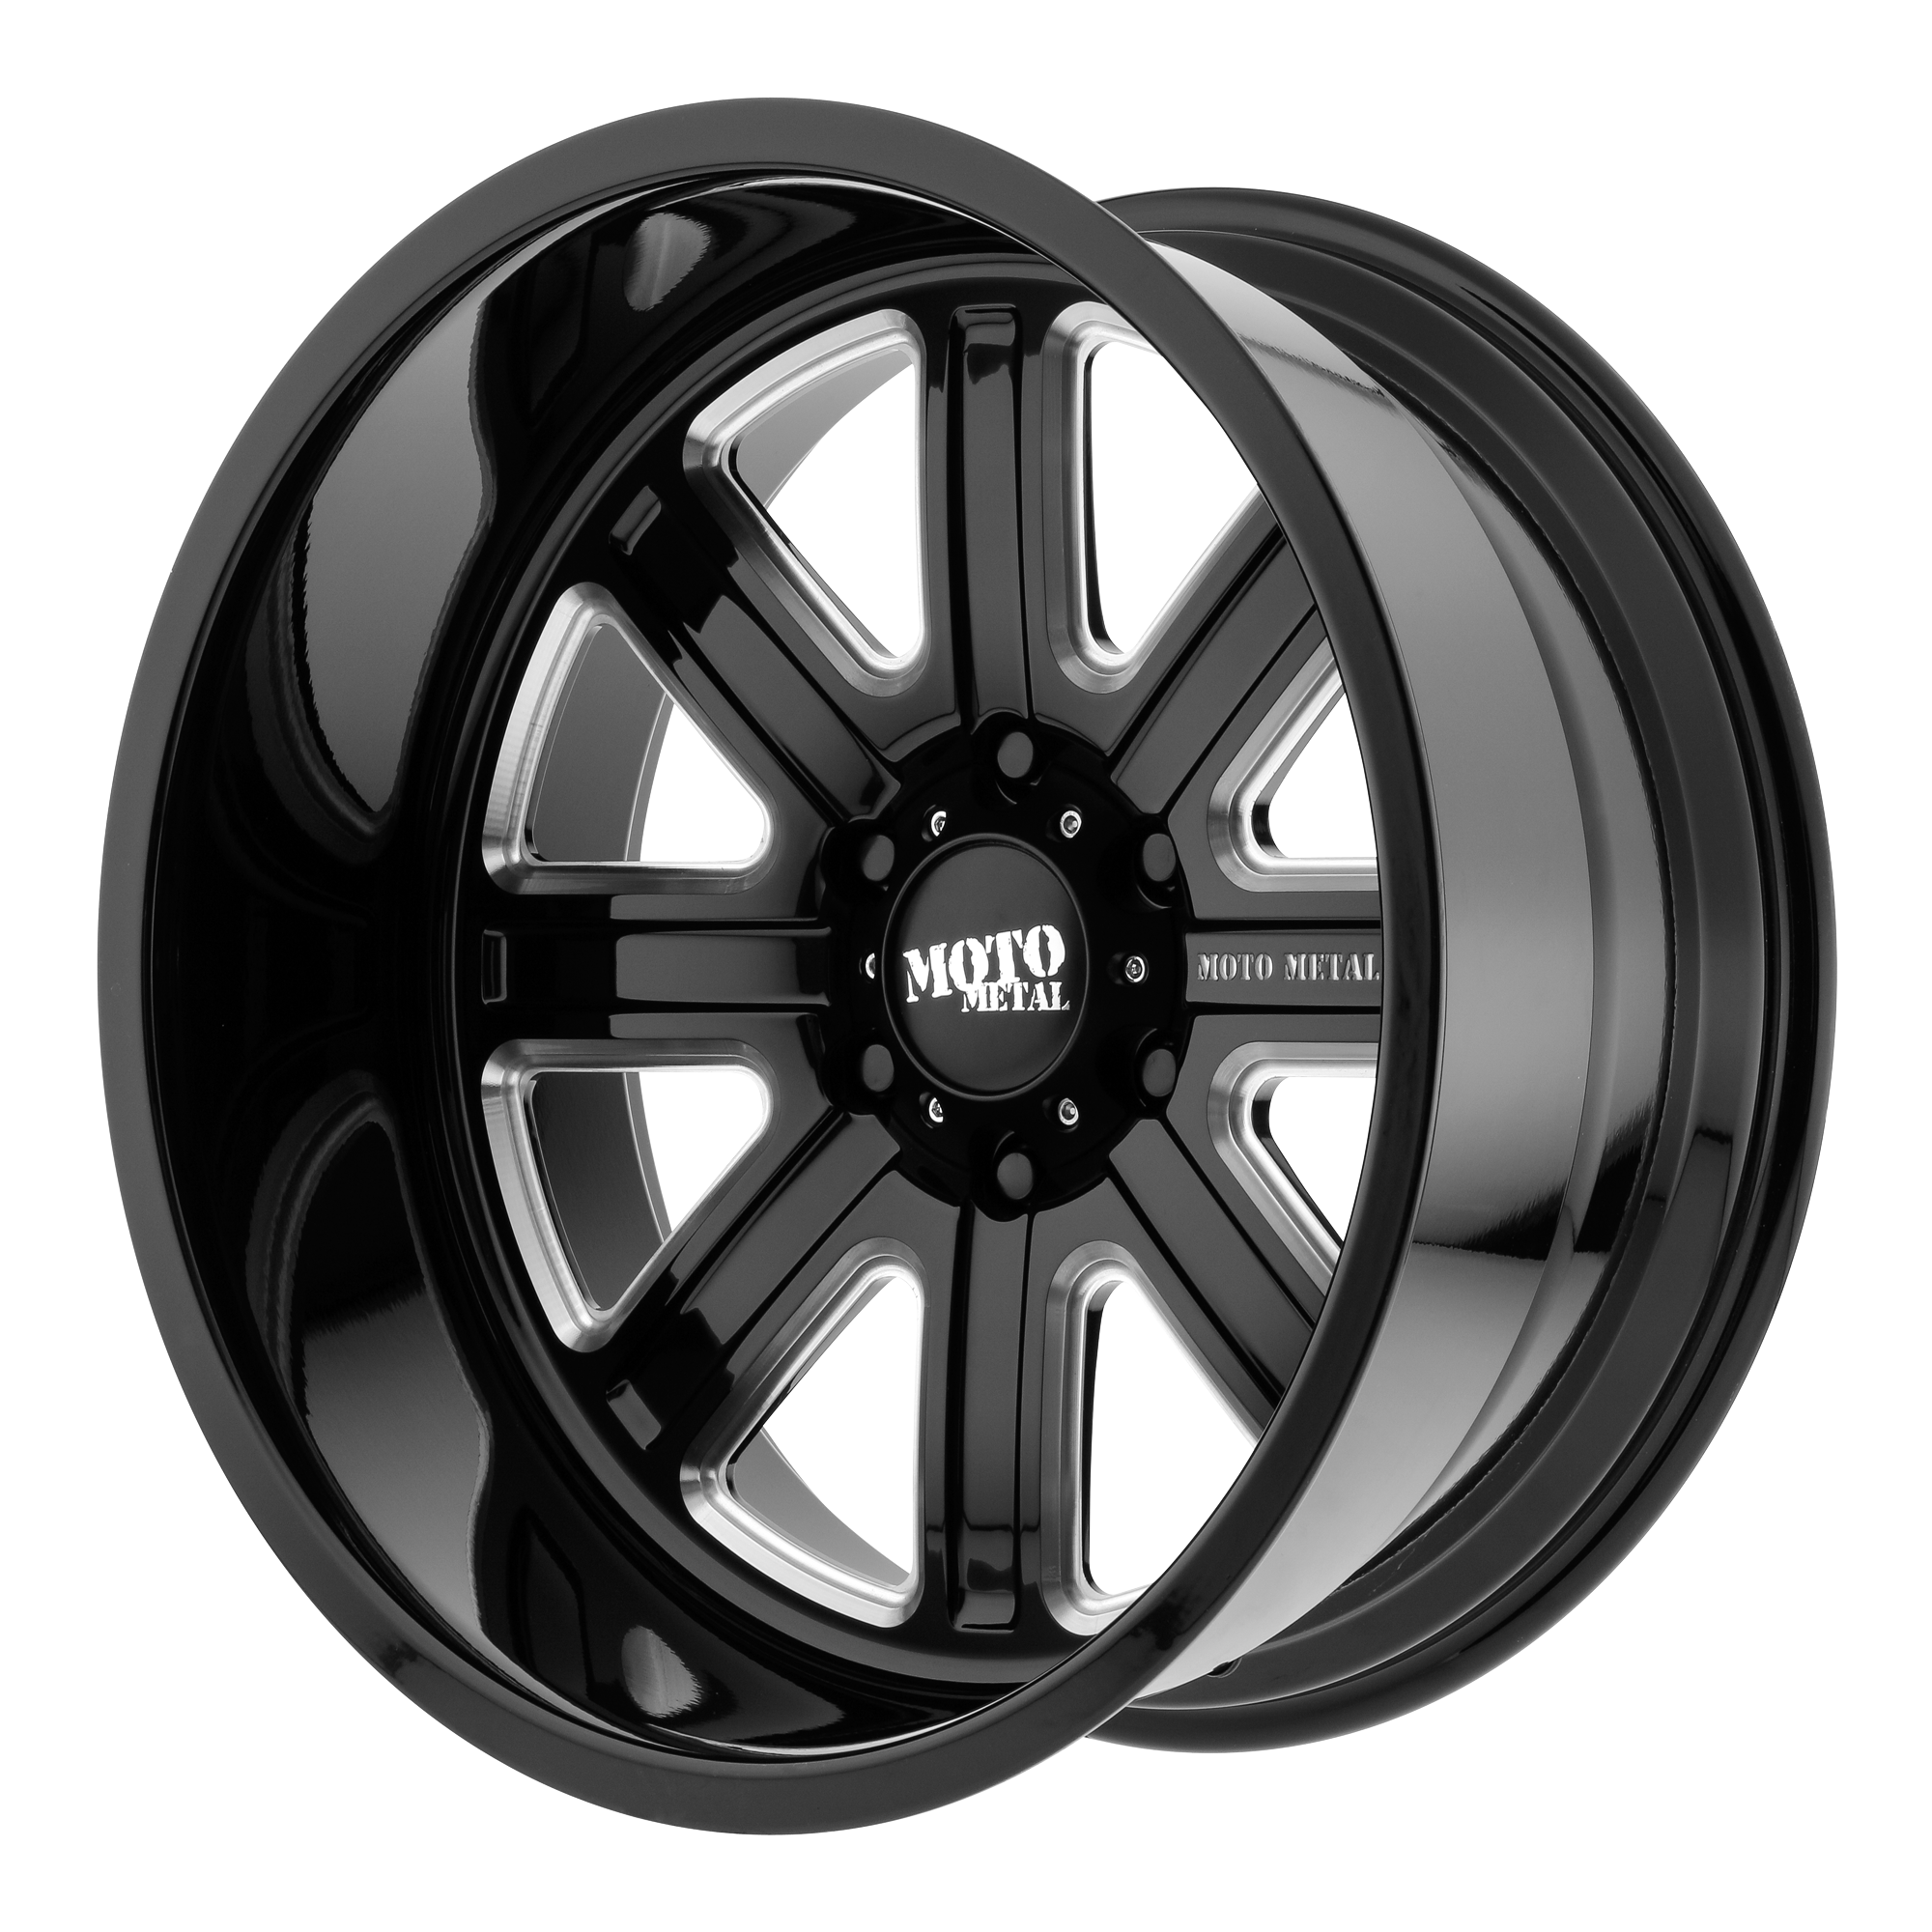 Moto Metal Offroad Wheels MO402 Gloss Black Milled